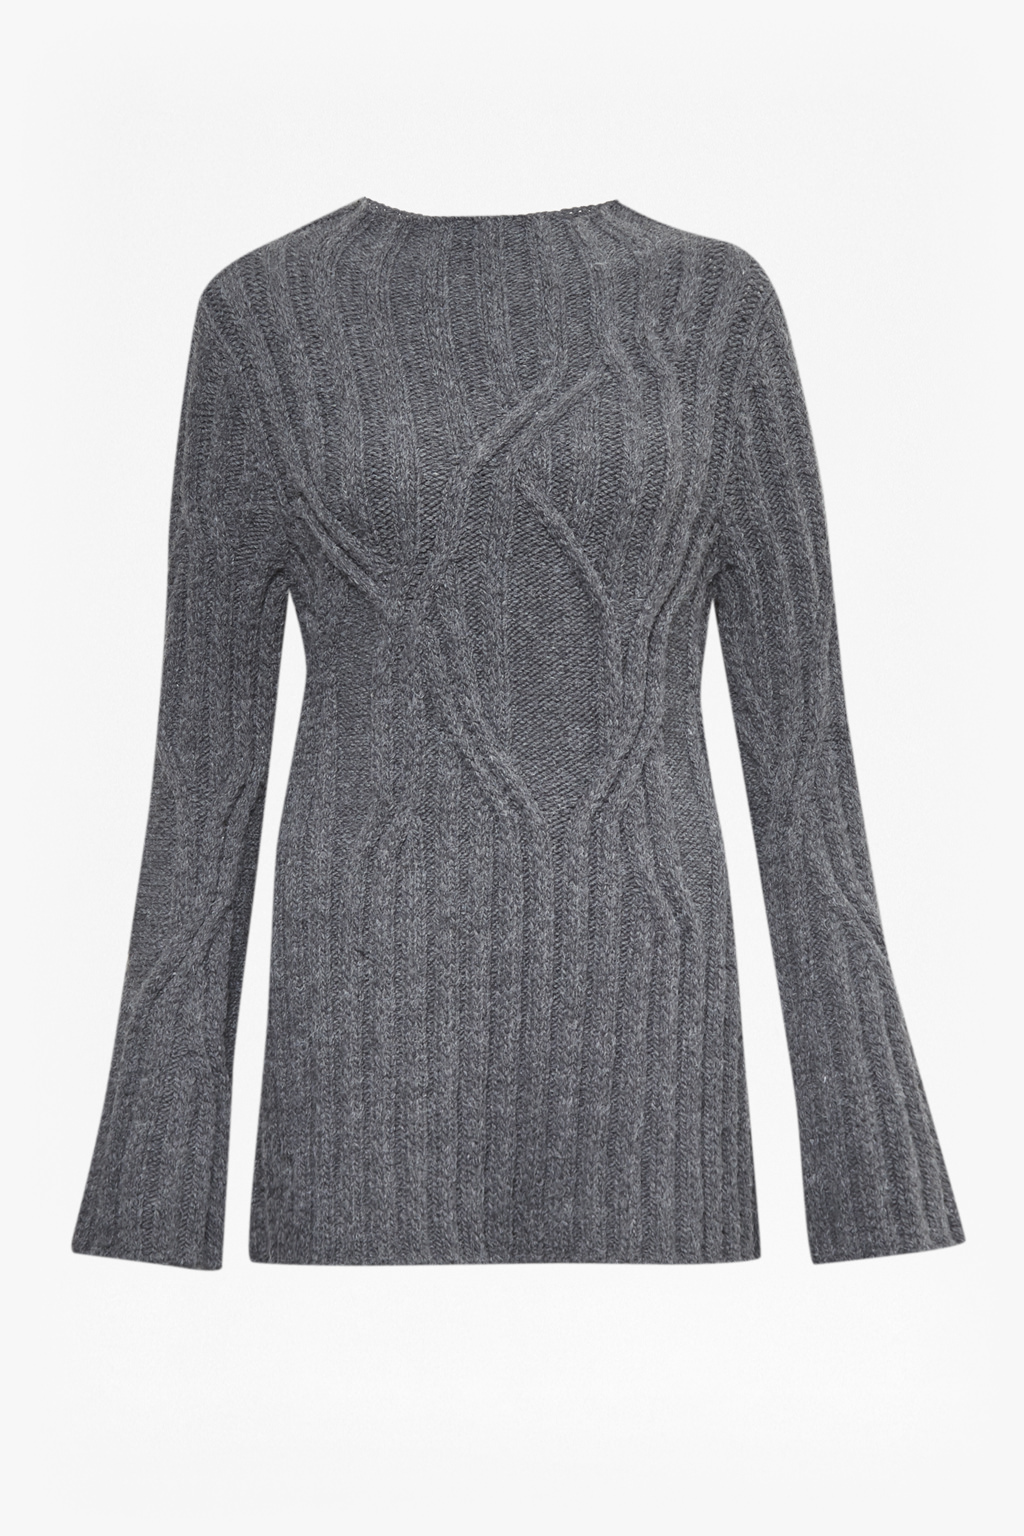 Cable Knit Jumper - Black French Connection Cheap Sale New Arrival TqIT6ADK